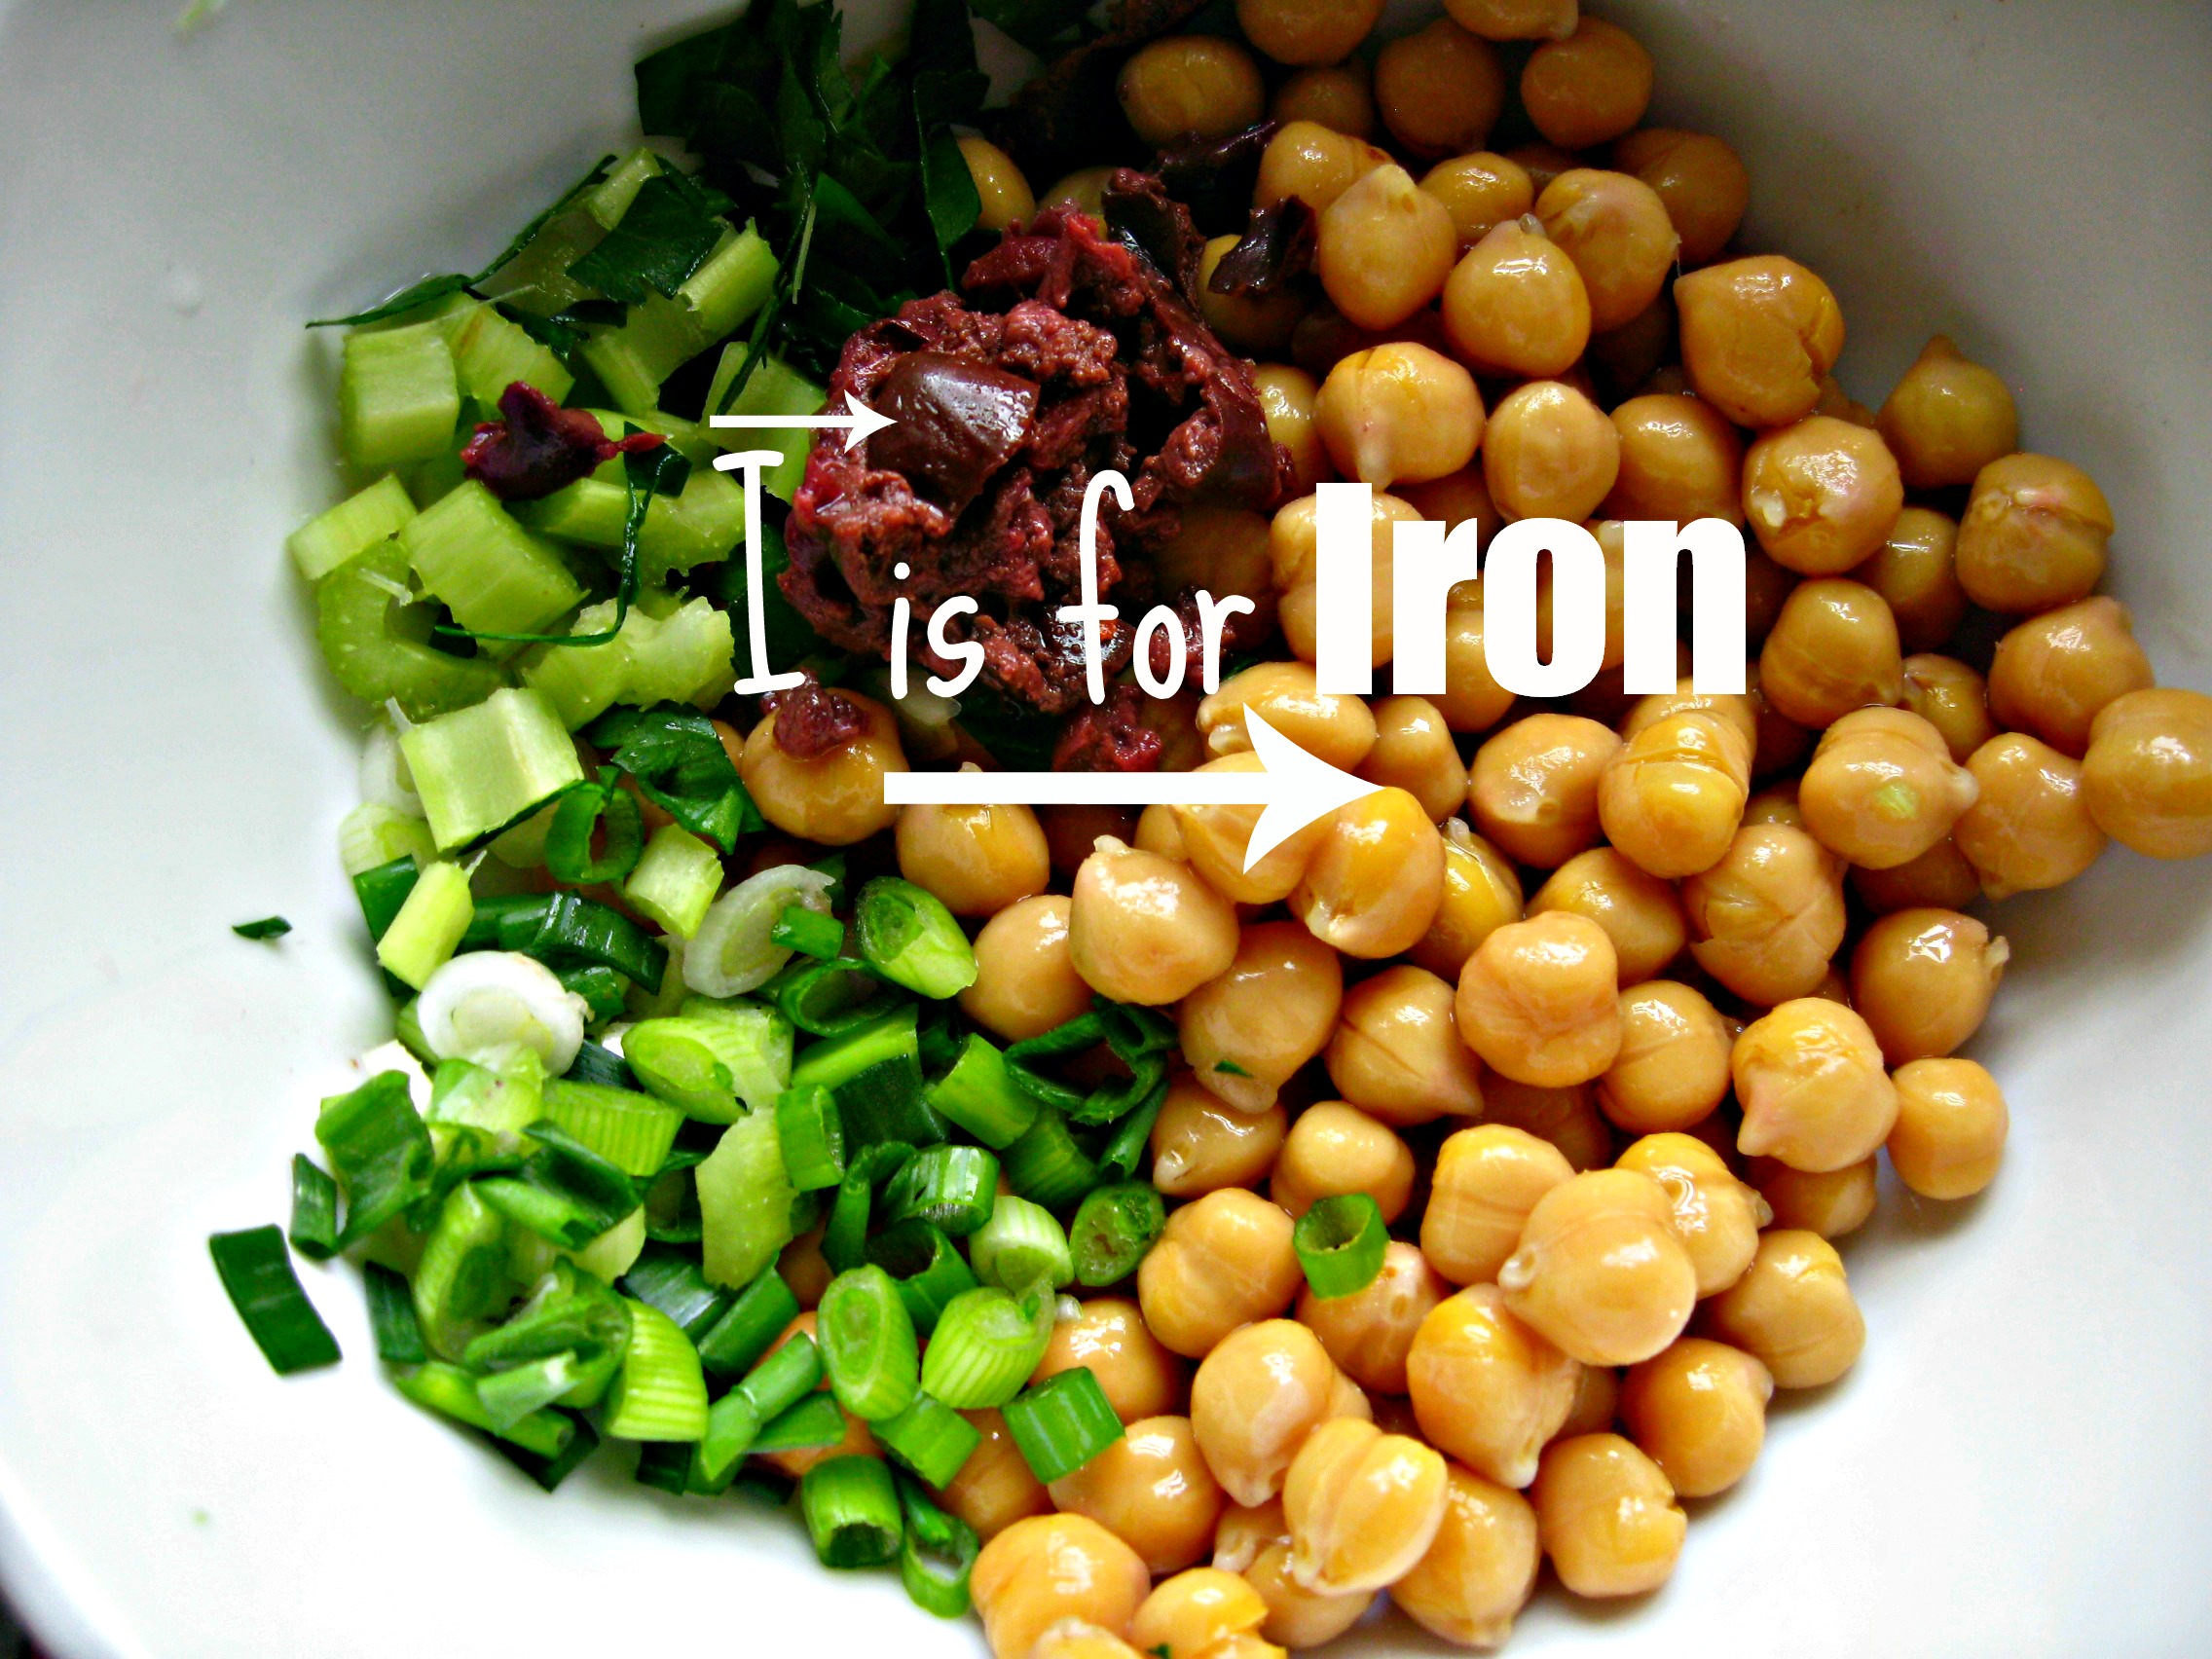 What is iron 45